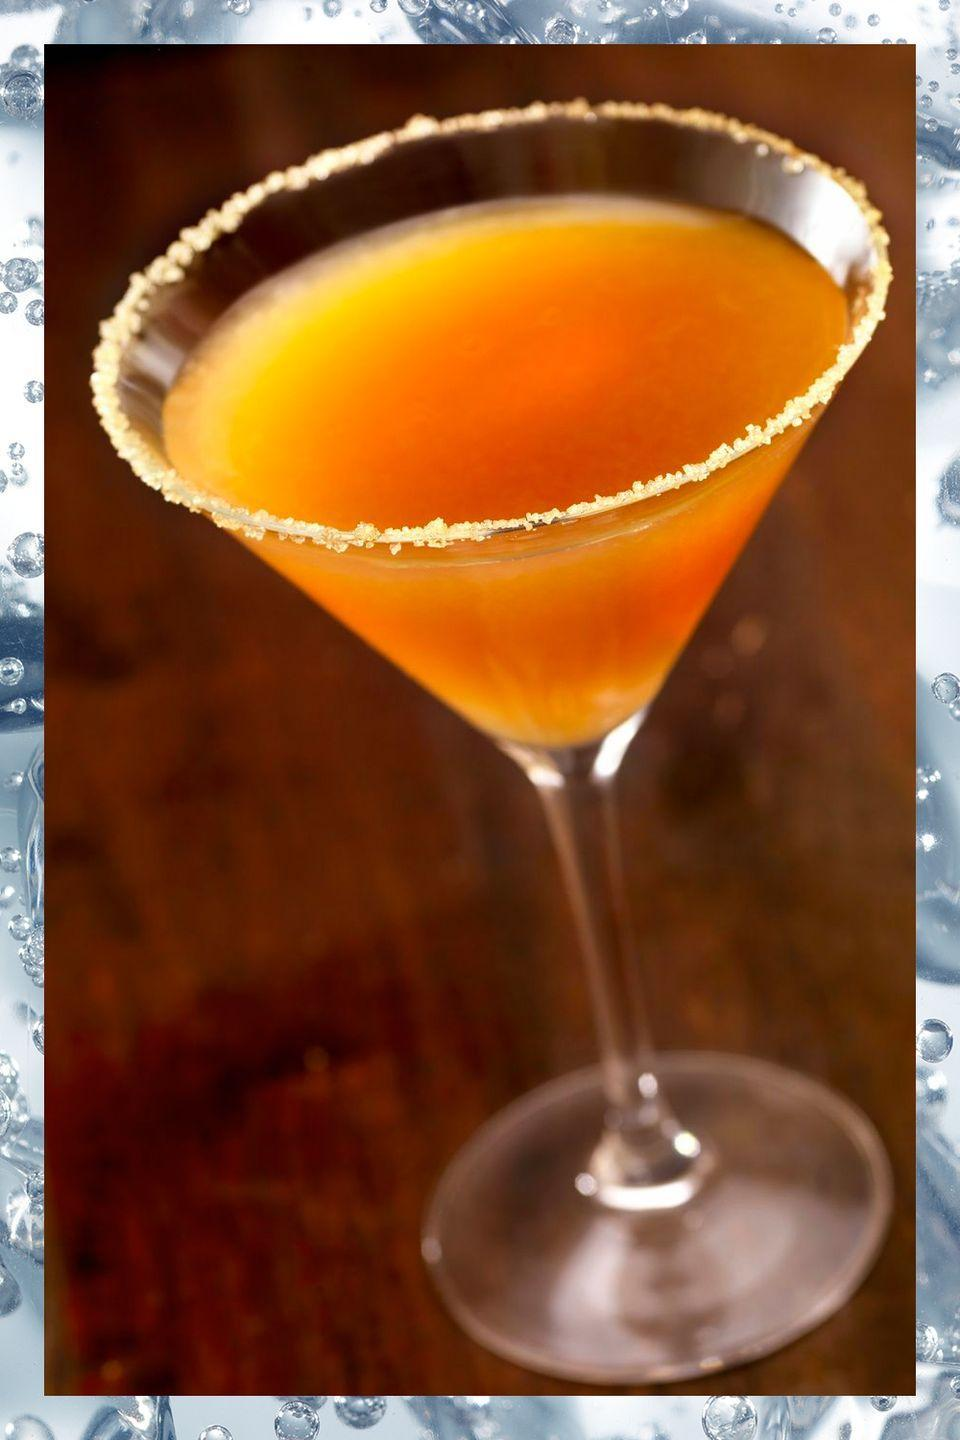 """<p>This simple mix of brandy, lemon juice, and orange liqueur dates to the 1920s. Once you try one you'll understand why the recipe has survived so long.</p><p>- 2 oz VS or VSOP Cognac<br>- 1 oz Cointreau<br>- .75 oz lemon juice</p><p><em>Shake ingredients with ice. Strain into a rocks glass or a cocktail class with a sugar-coated rim.</em></p><p><strong>More: </strong><a href=""""http://www.townandcountrymag.com/leisure/drinks/g2920/cognac-cocktails/"""" rel=""""nofollow noopener"""" target=""""_blank"""" data-ylk=""""slk:Cognac Cocktails to Make at Home"""" class=""""link rapid-noclick-resp"""">Cognac Cocktails to Make at Home</a><br></p>"""